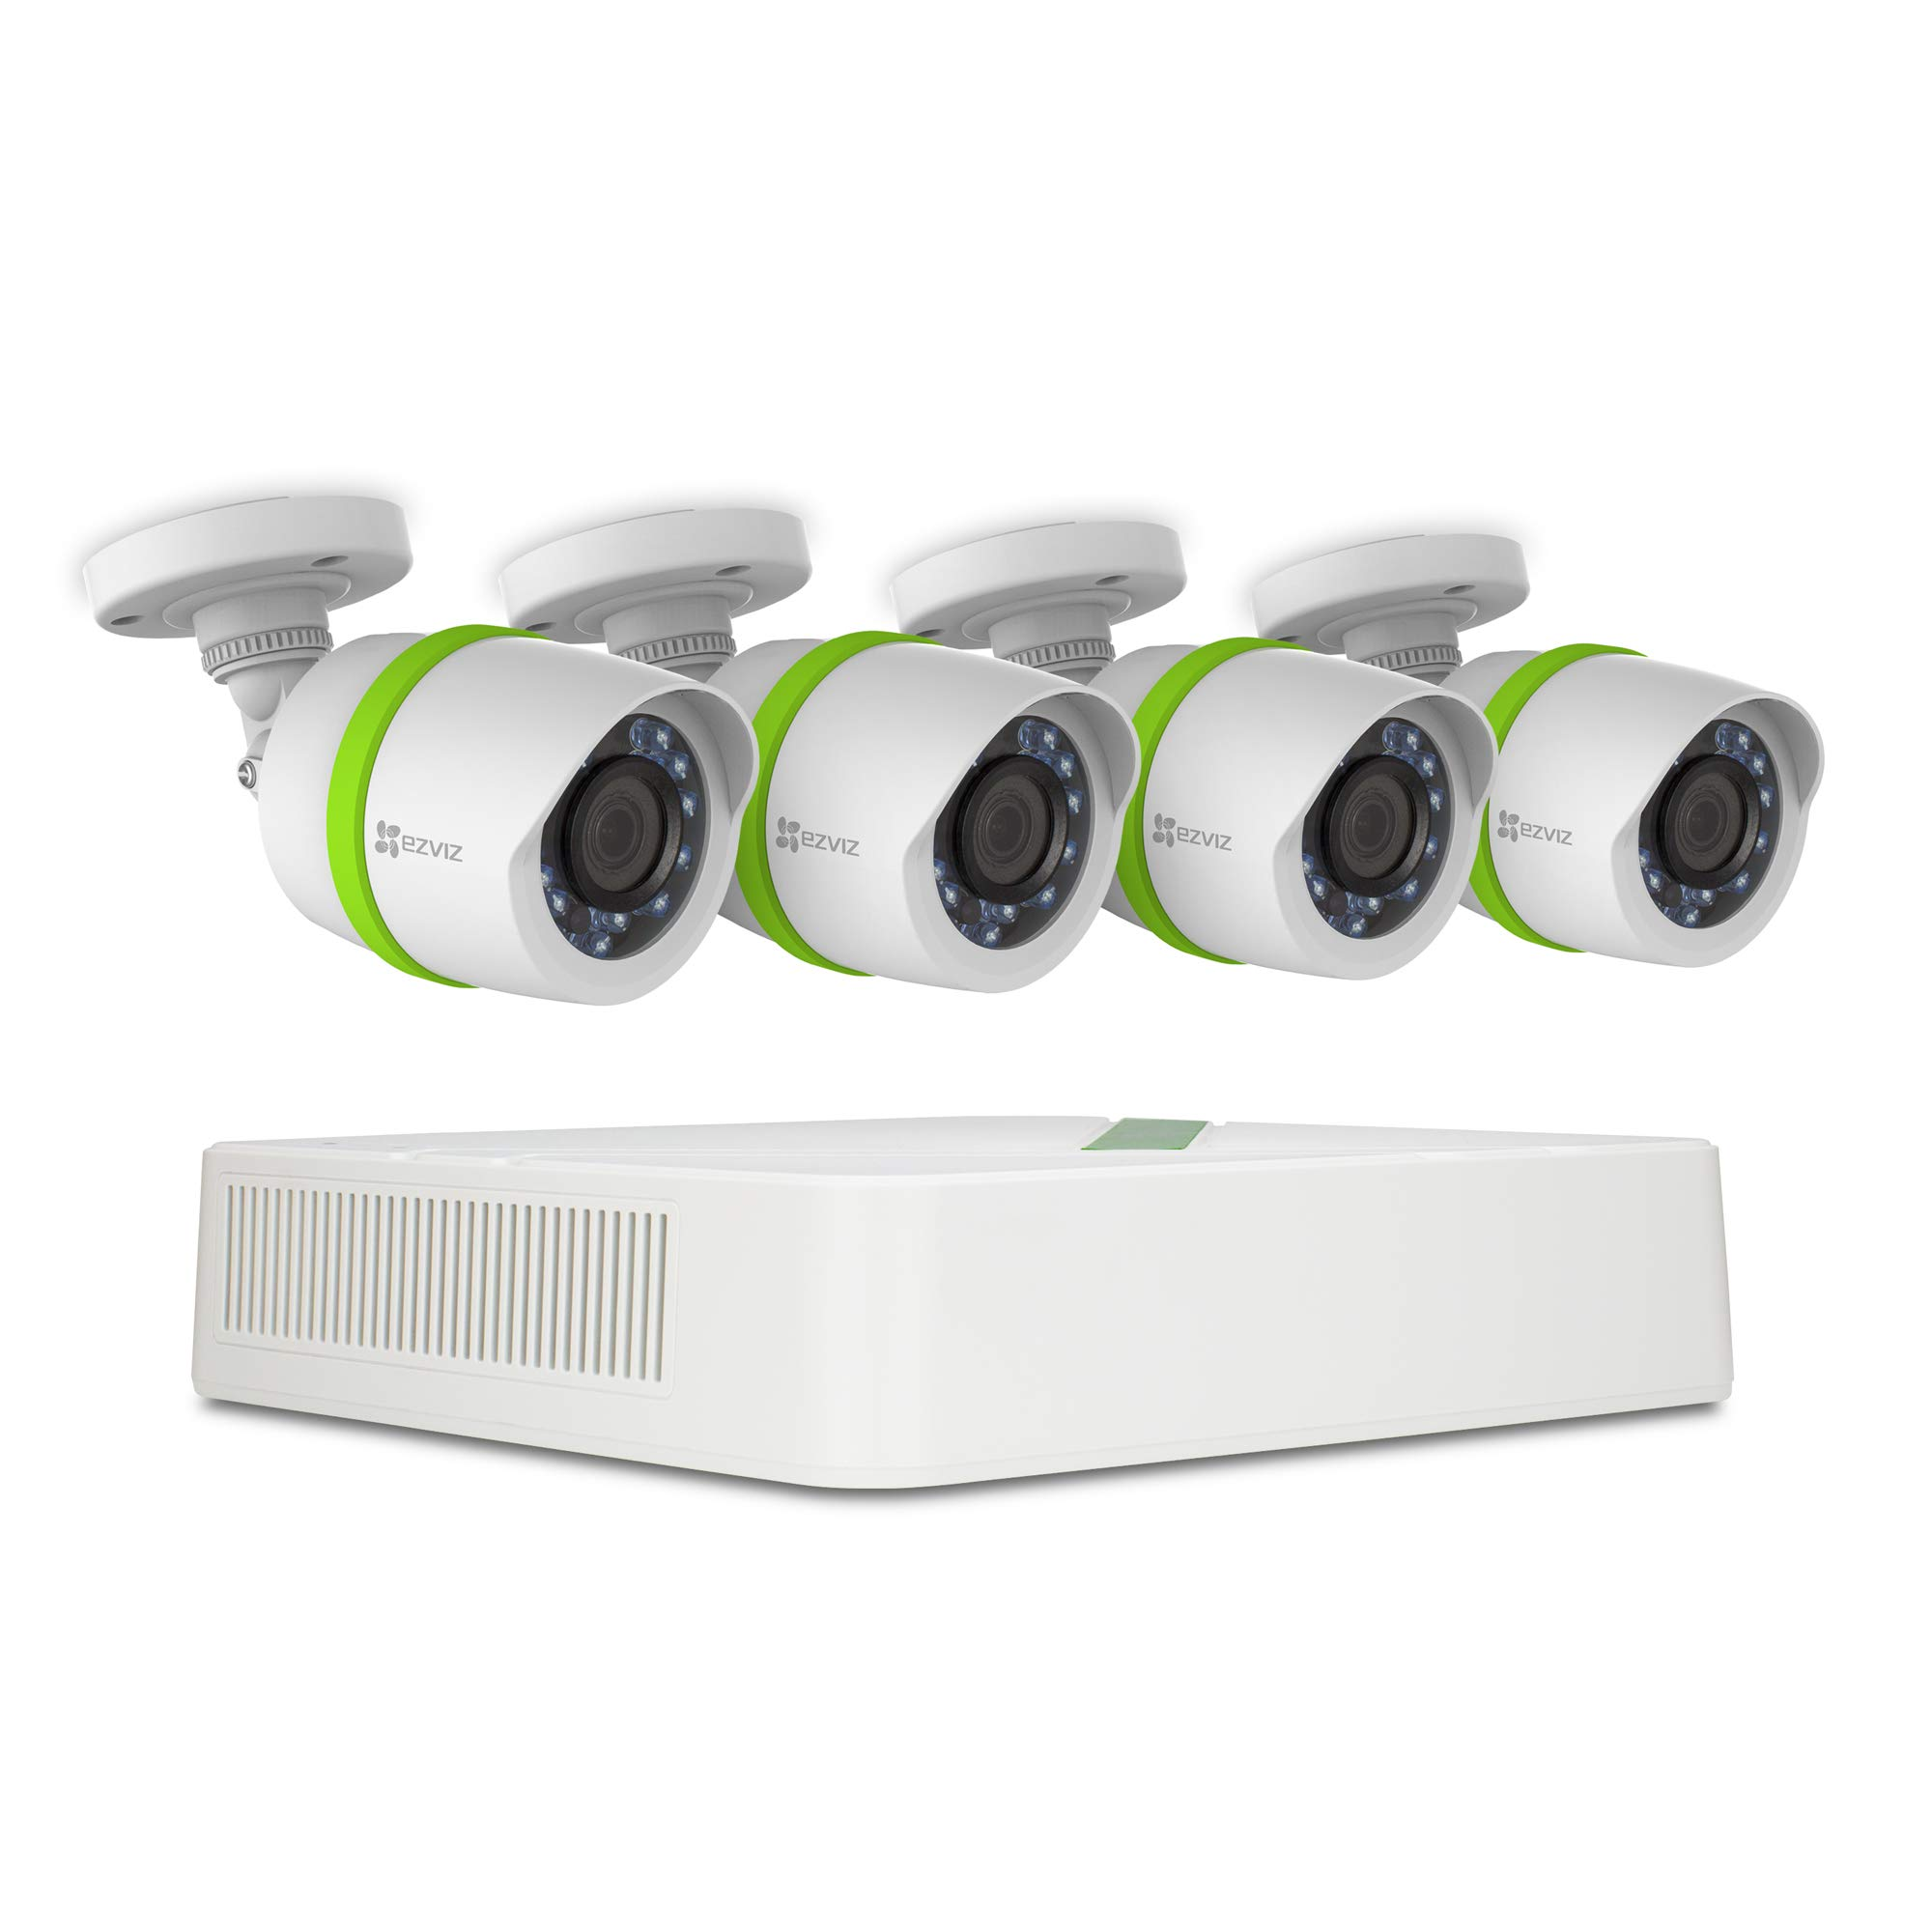 Refurbished: EZVIZ Full HD 1080p Outdoor Surveillance System, 4 Weatherproof HD Security Cameras, 4 Channel 1TB DVR Storage, 100ft Night Vision, Customizable Motion Detection by EZVIZ